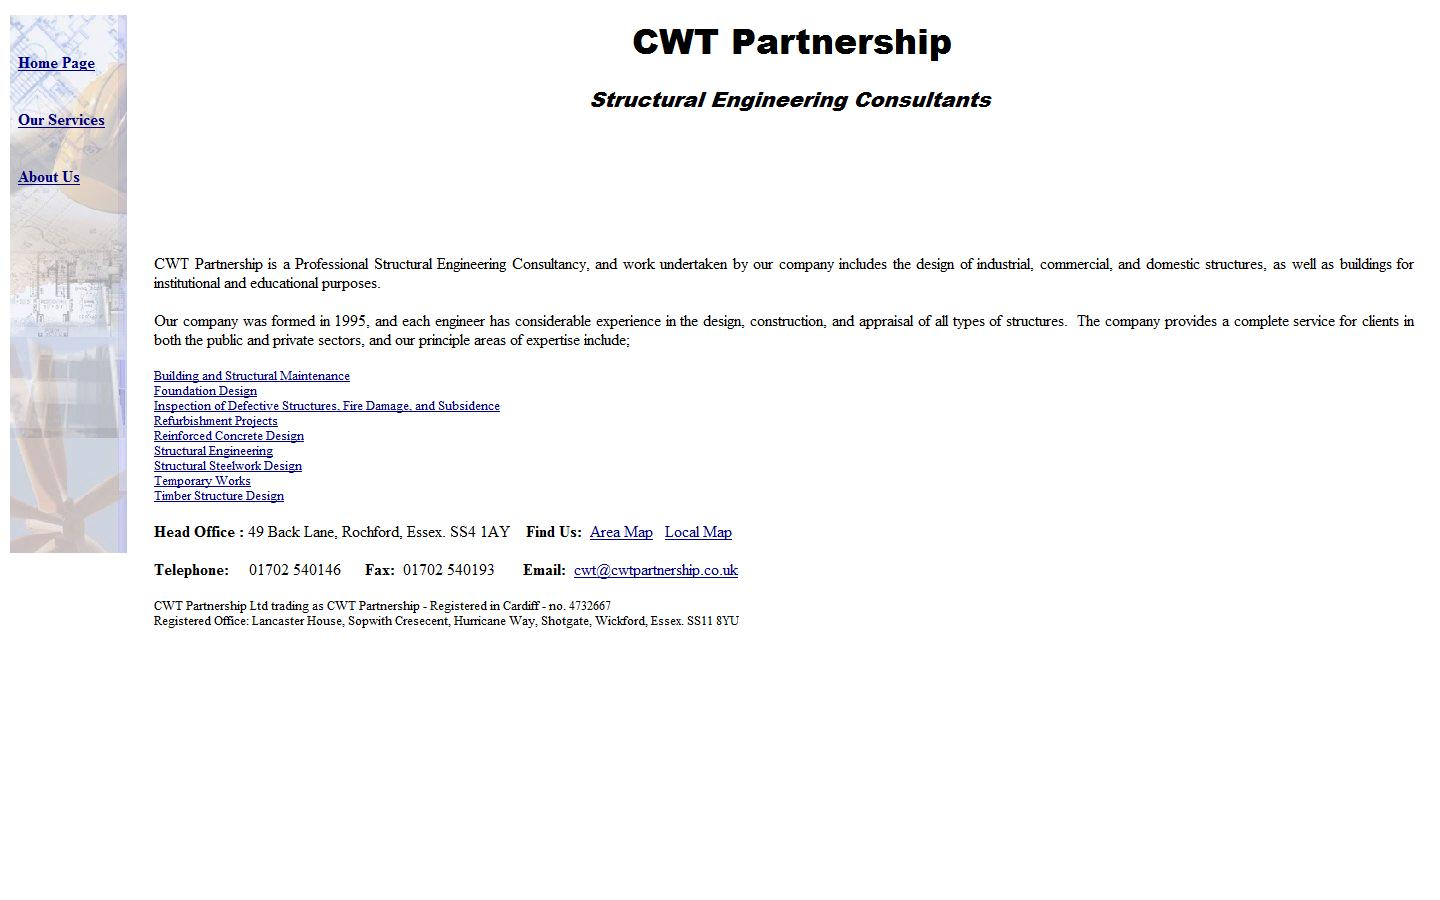 C W T Partnership, Essex, SS4 1AY